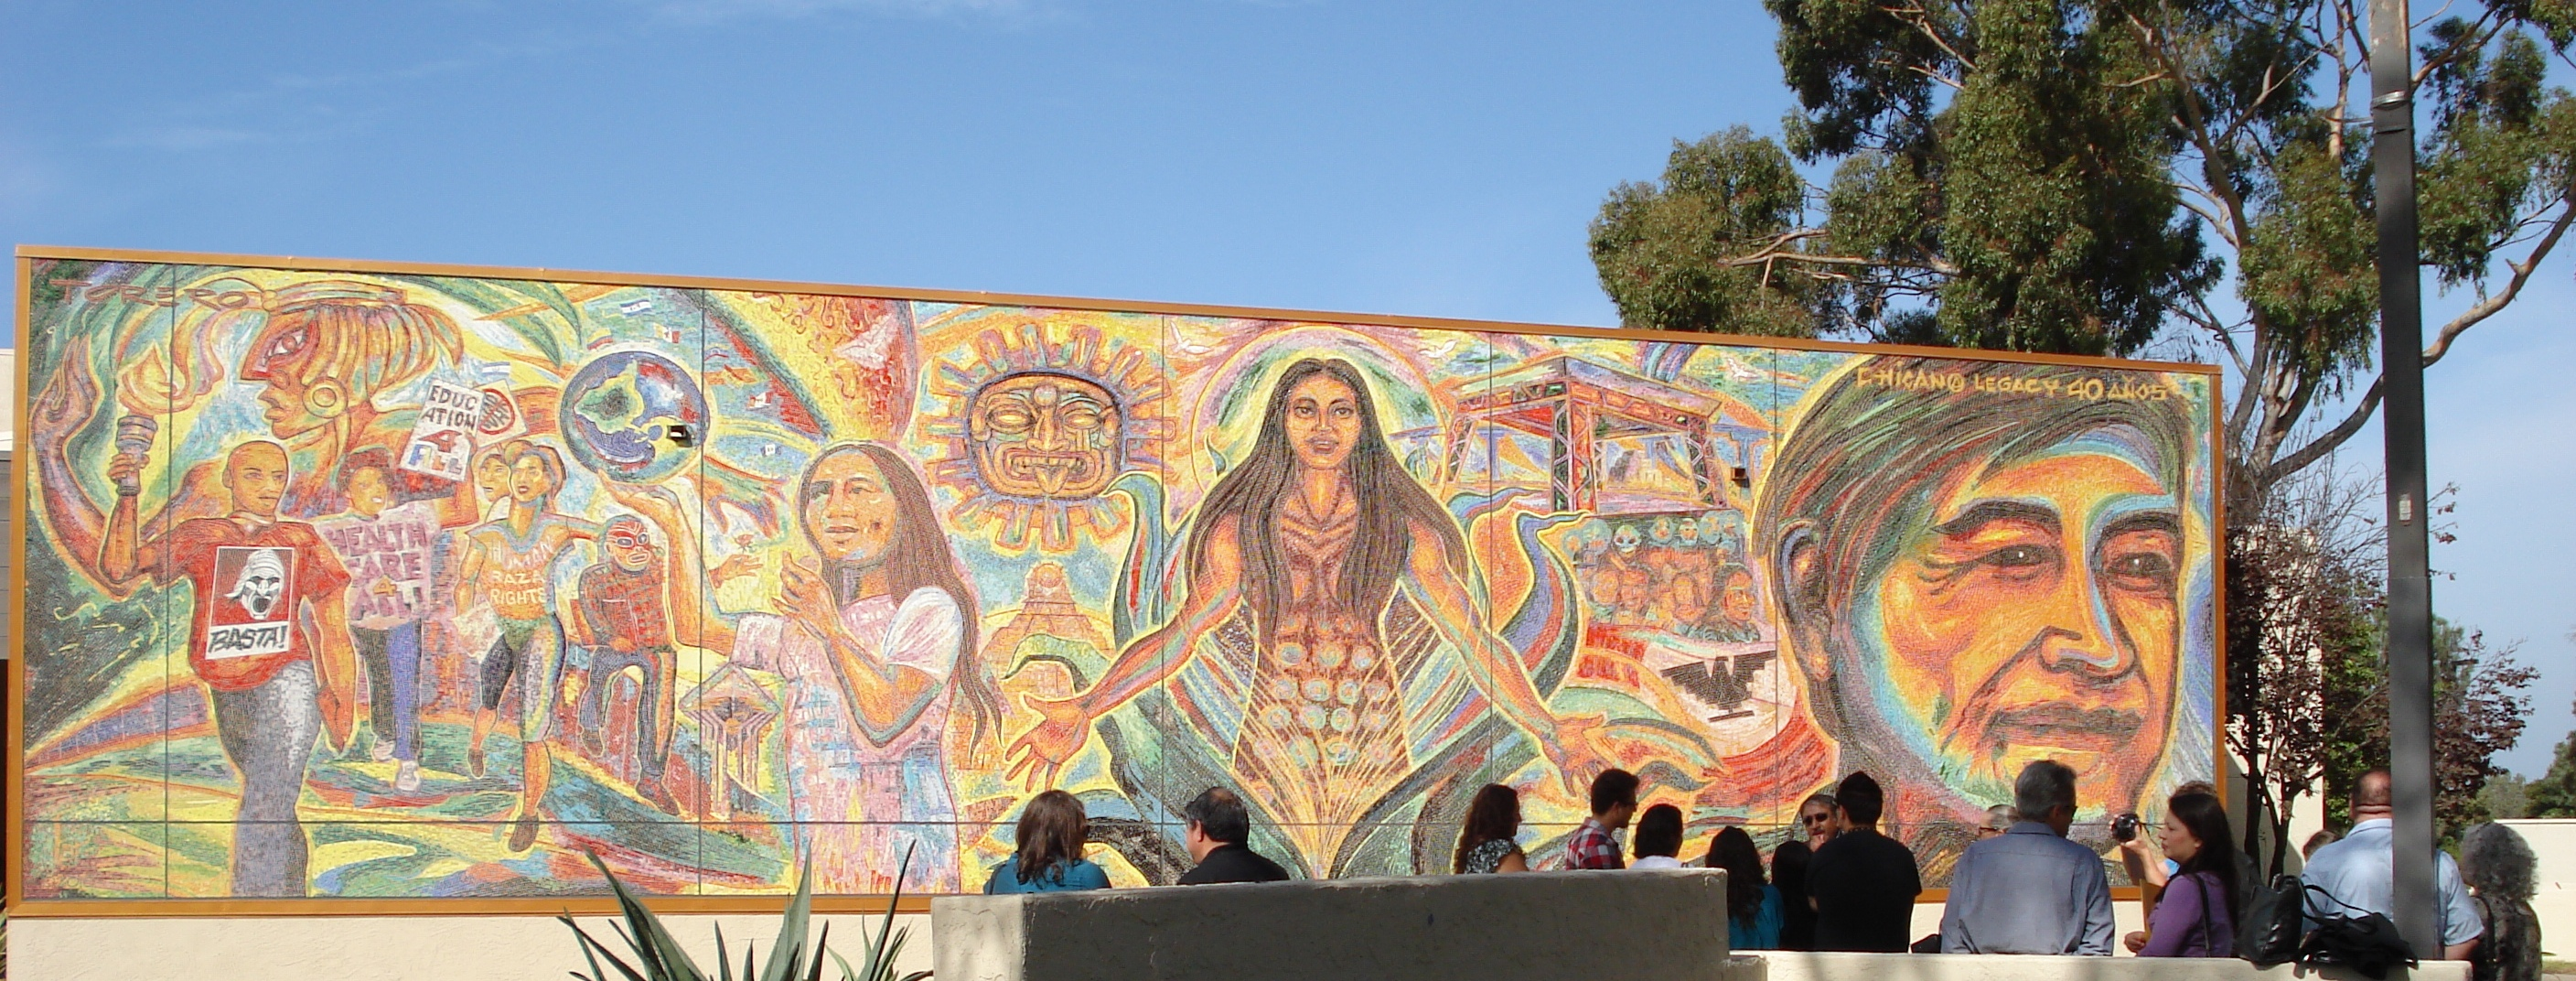 From chancellor khosla for Mural chicano